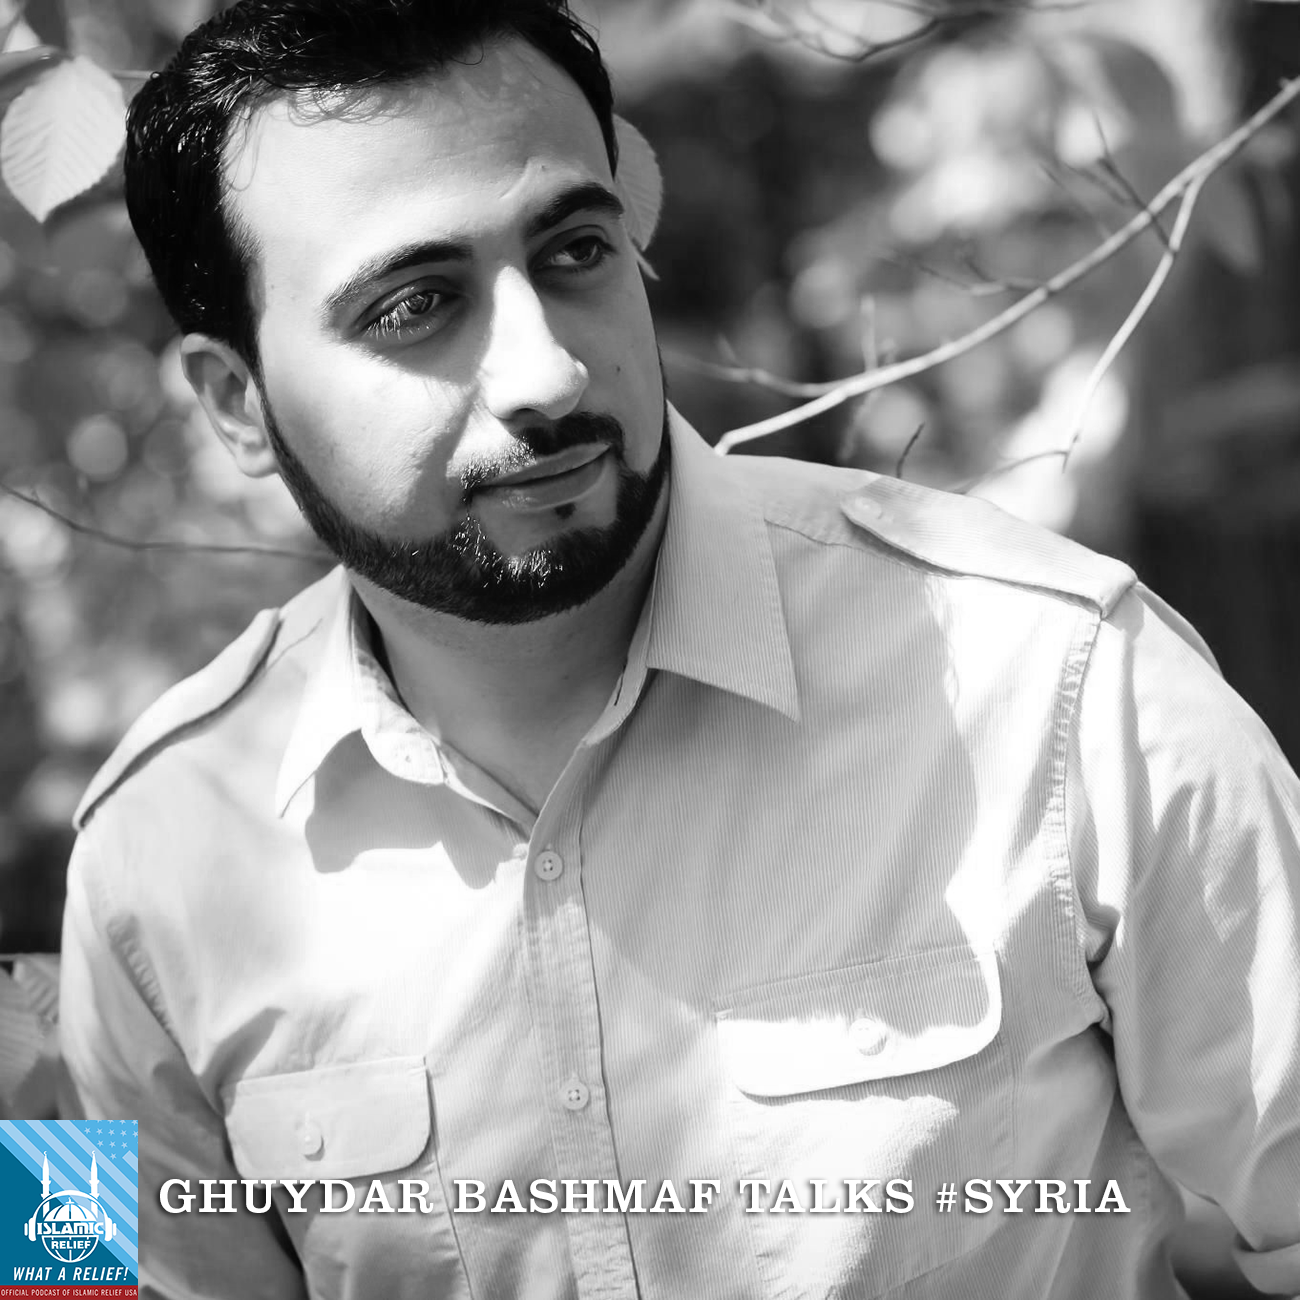 Ghuydar was born and raised in Syria, and came to the United States at age 19. He grew up listening to Islamic nasheed—spiritual songs—and now he sings them himself. Right now, many of his songs focus on his love for Syria and his heartbreak for the country and people.